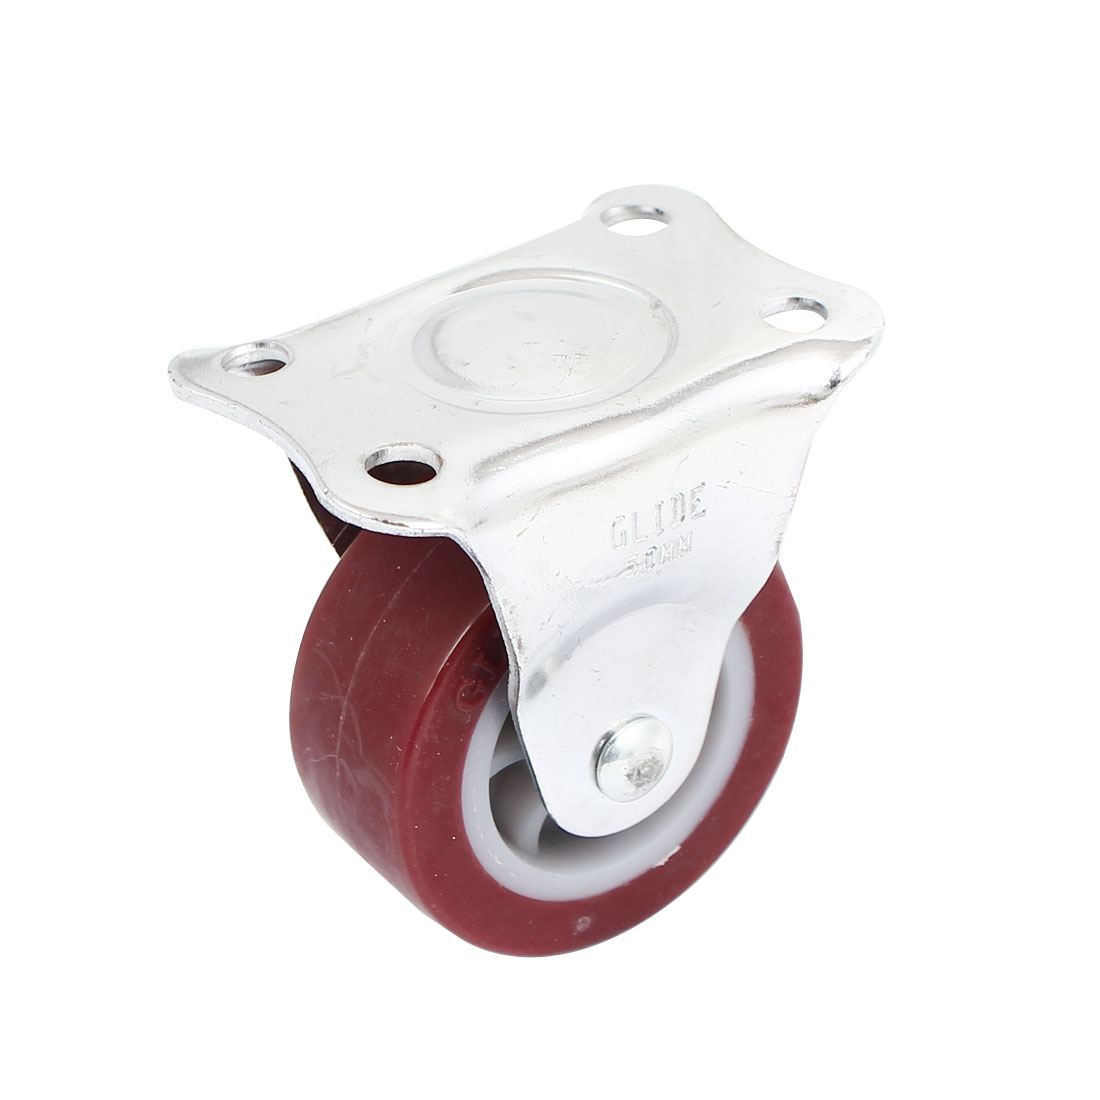 50mm x 22mm Hard Rubber Base Metal Top Plate Bearing Caster Wheels